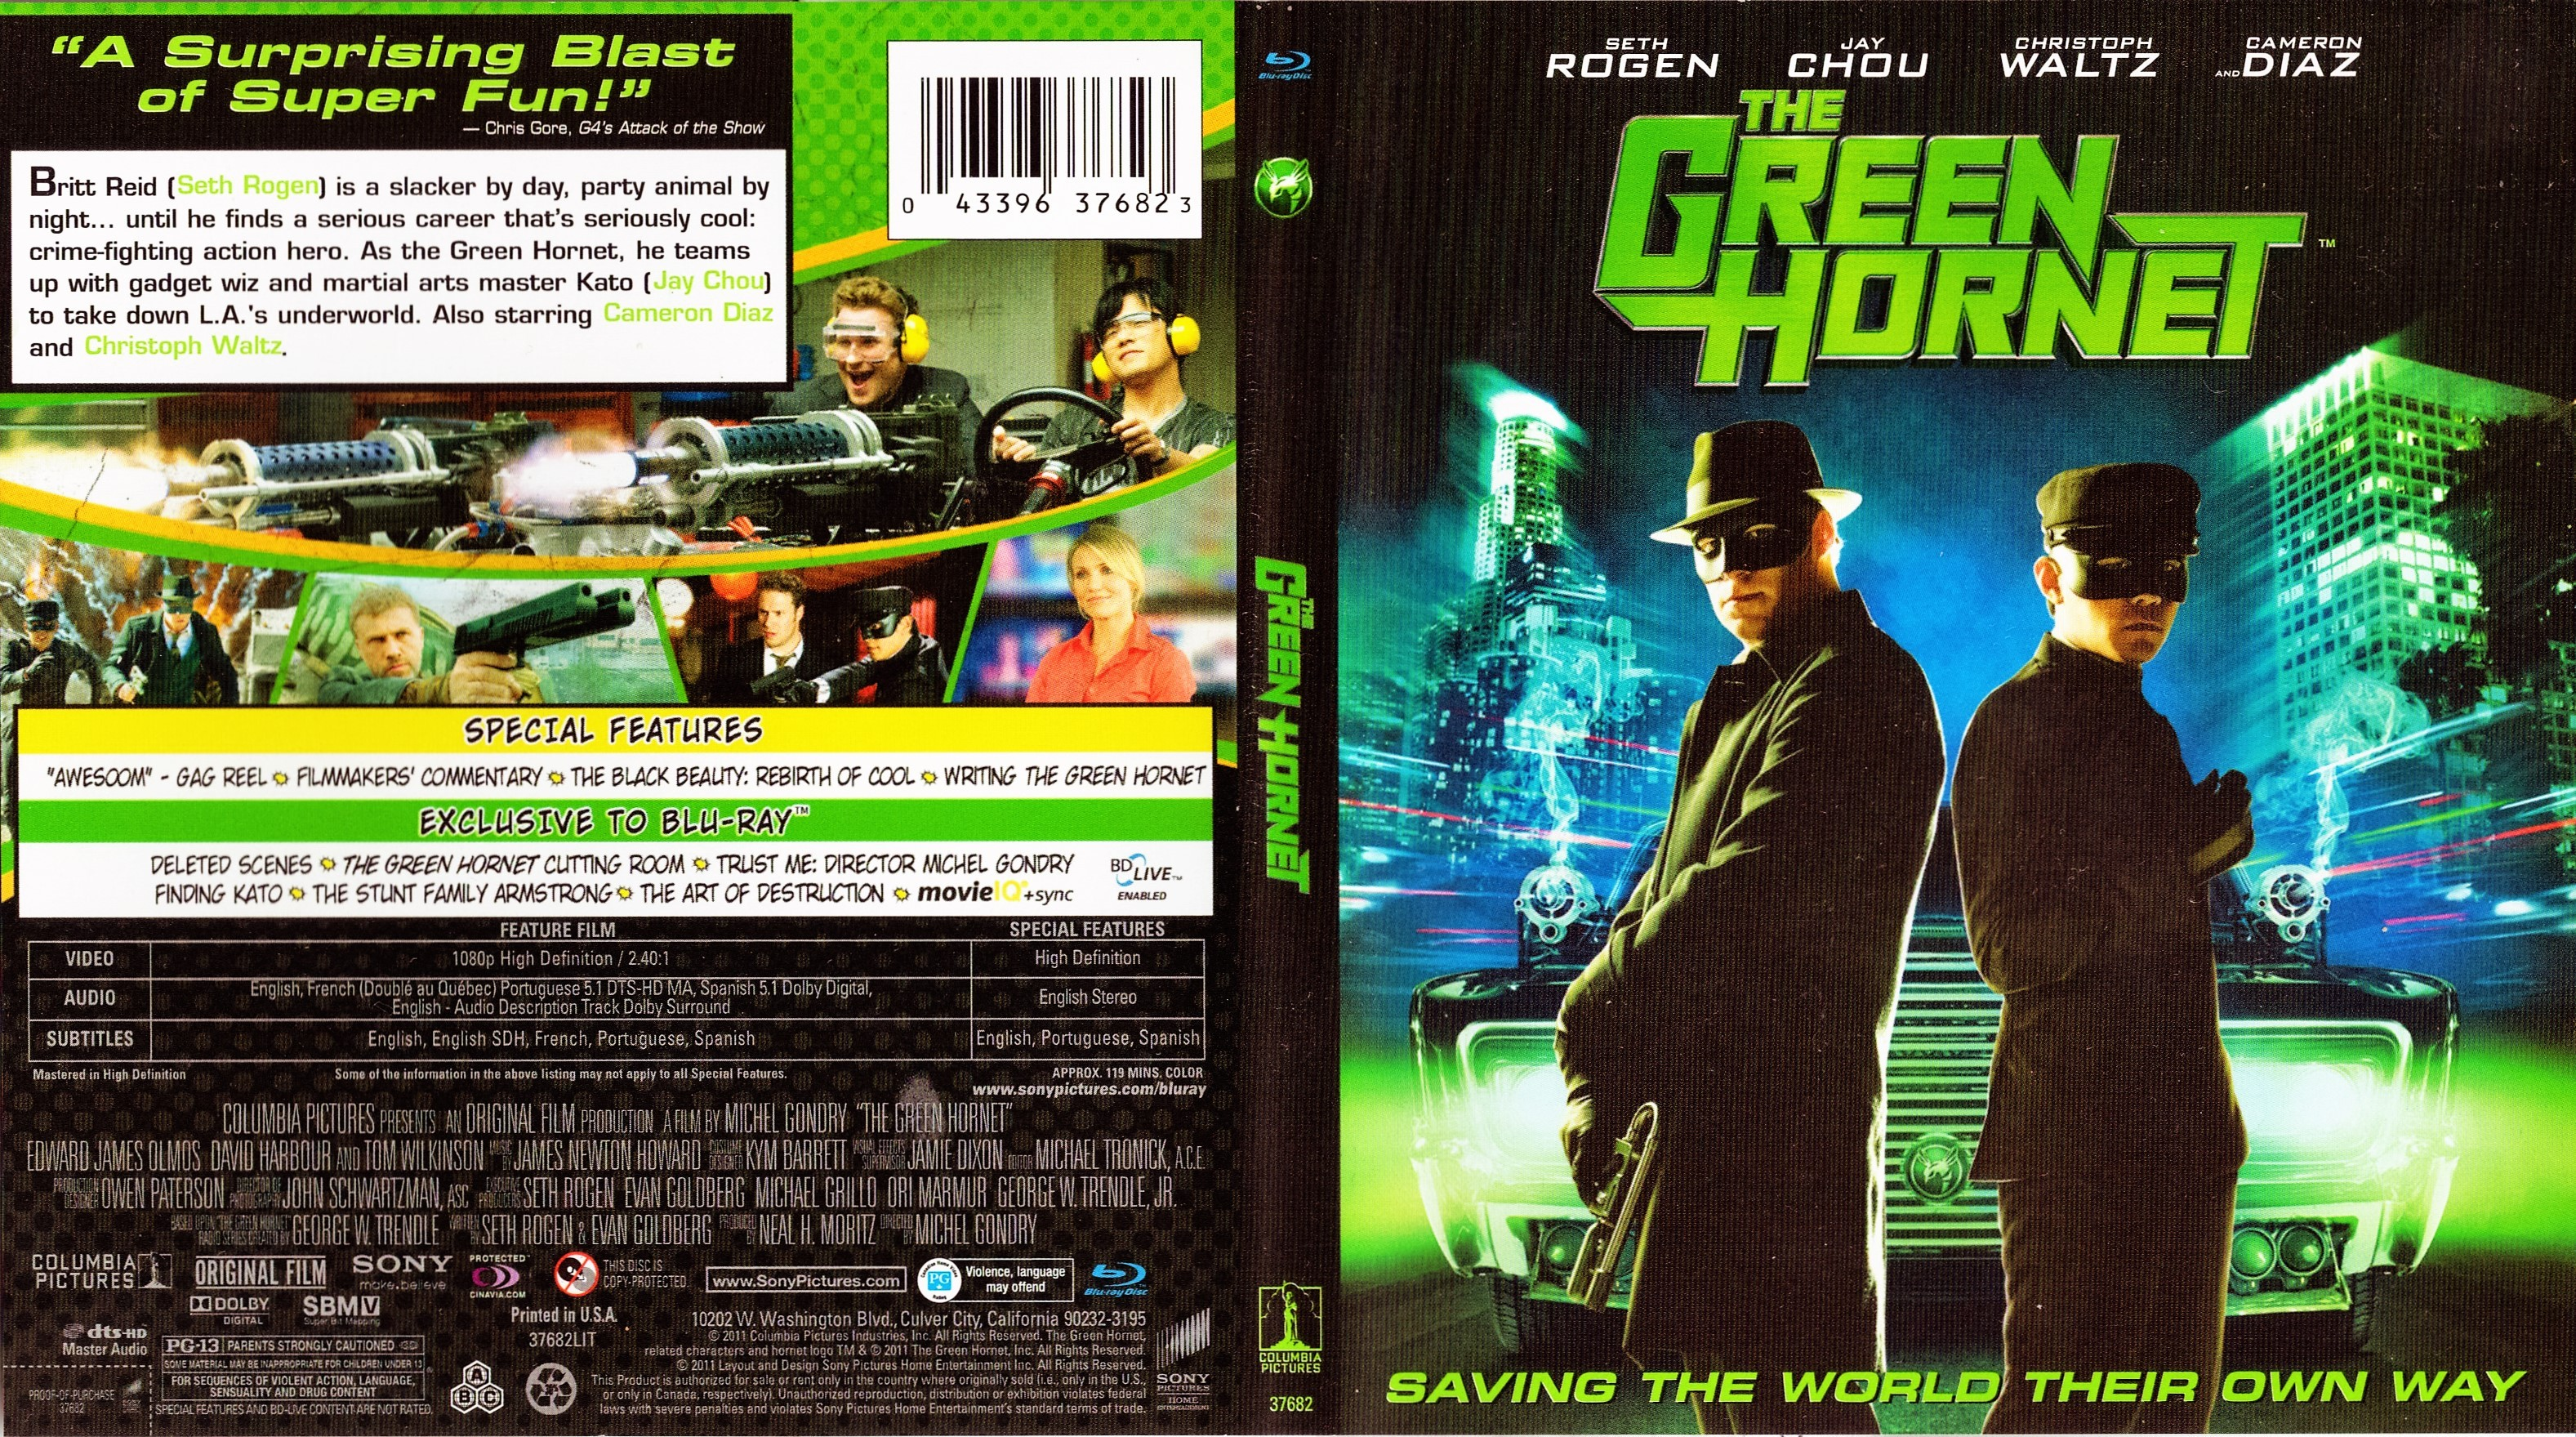 The Green Hornet 2011 R1 Blu Ray Cover Dvd Covers Cover Century Over 500 000 Album Art Covers For Free